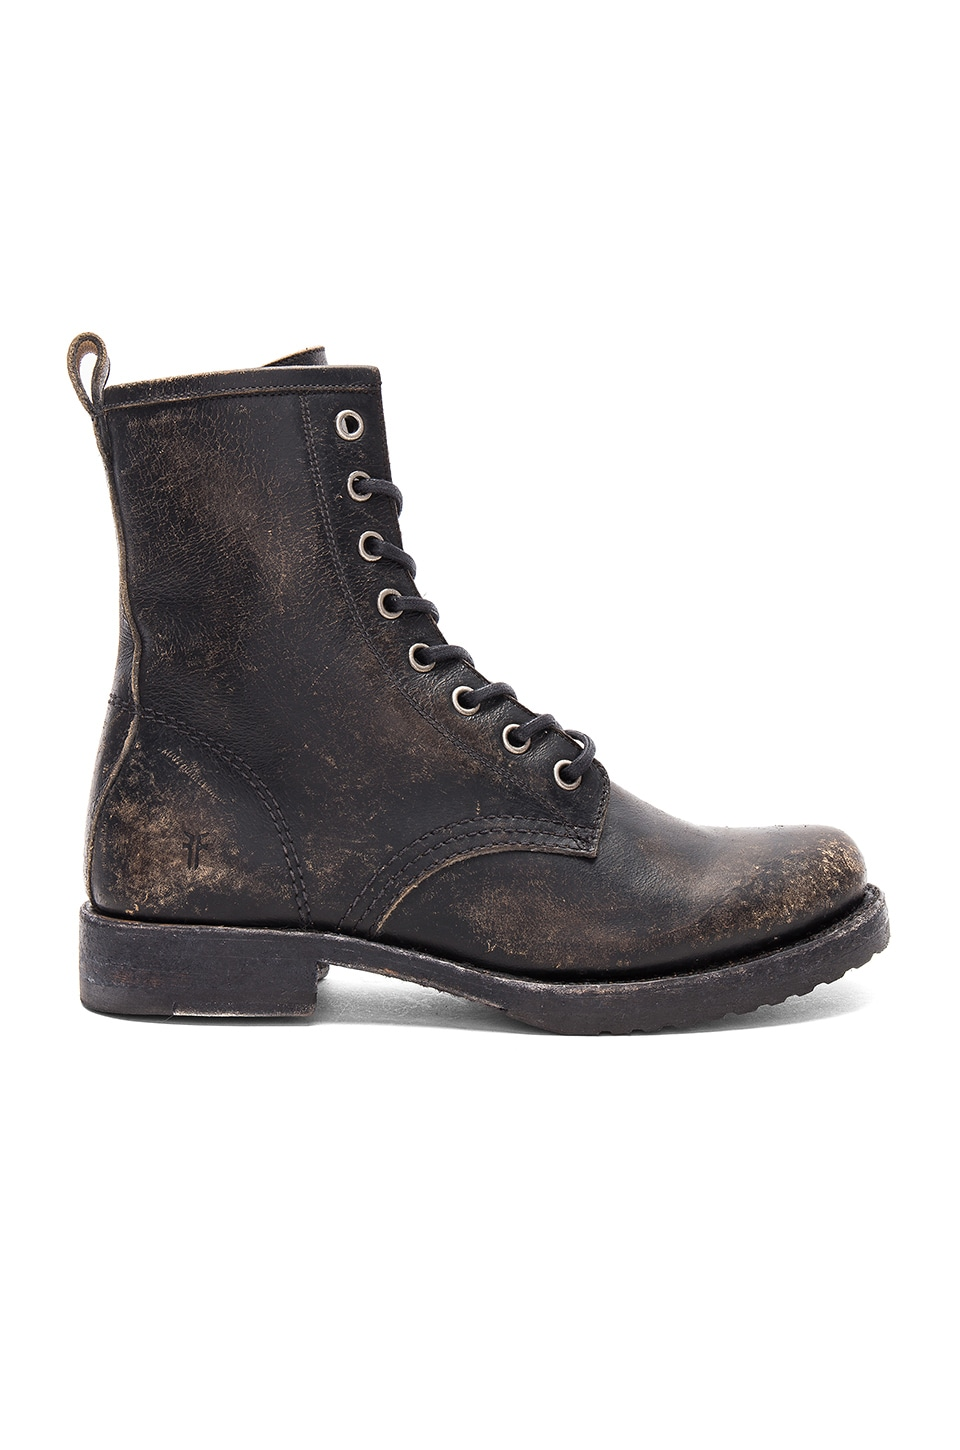 Veronica Boot by Frye